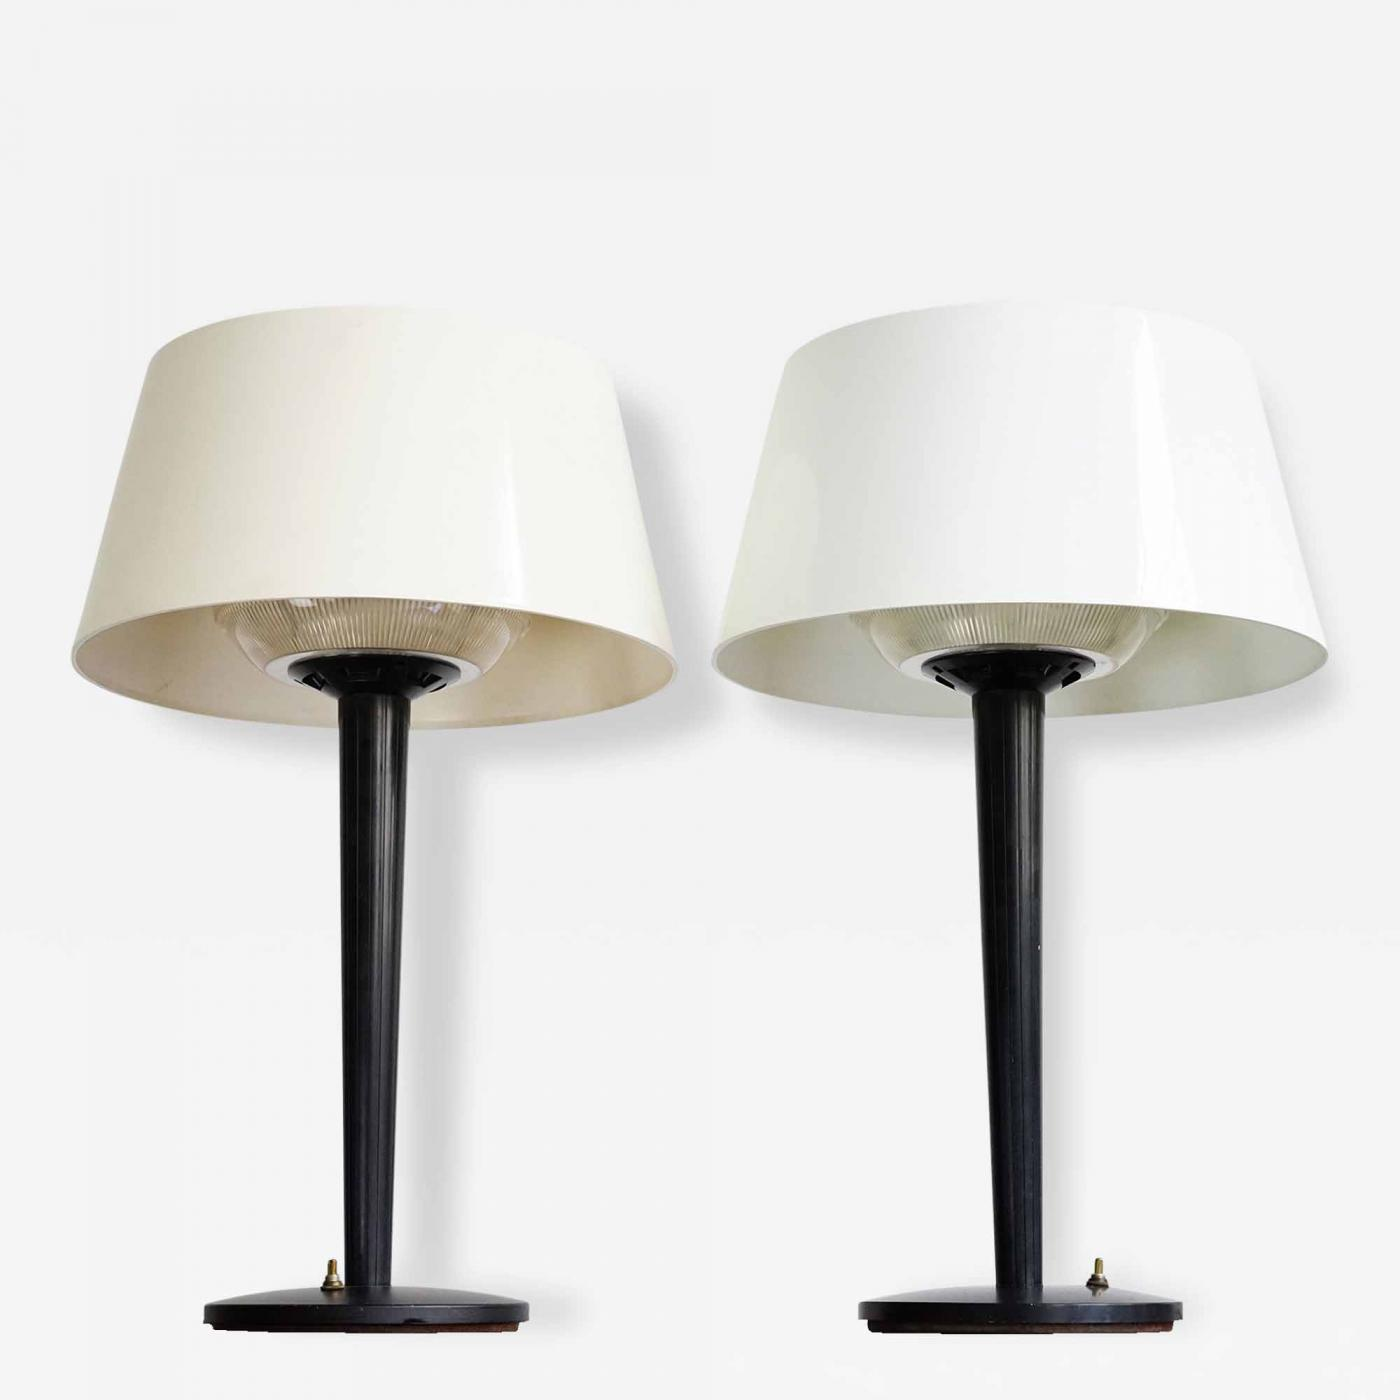 art lamp for mid sold century thurston sale prices paintings modern artwork desk lamps gerald artist at saucer auction